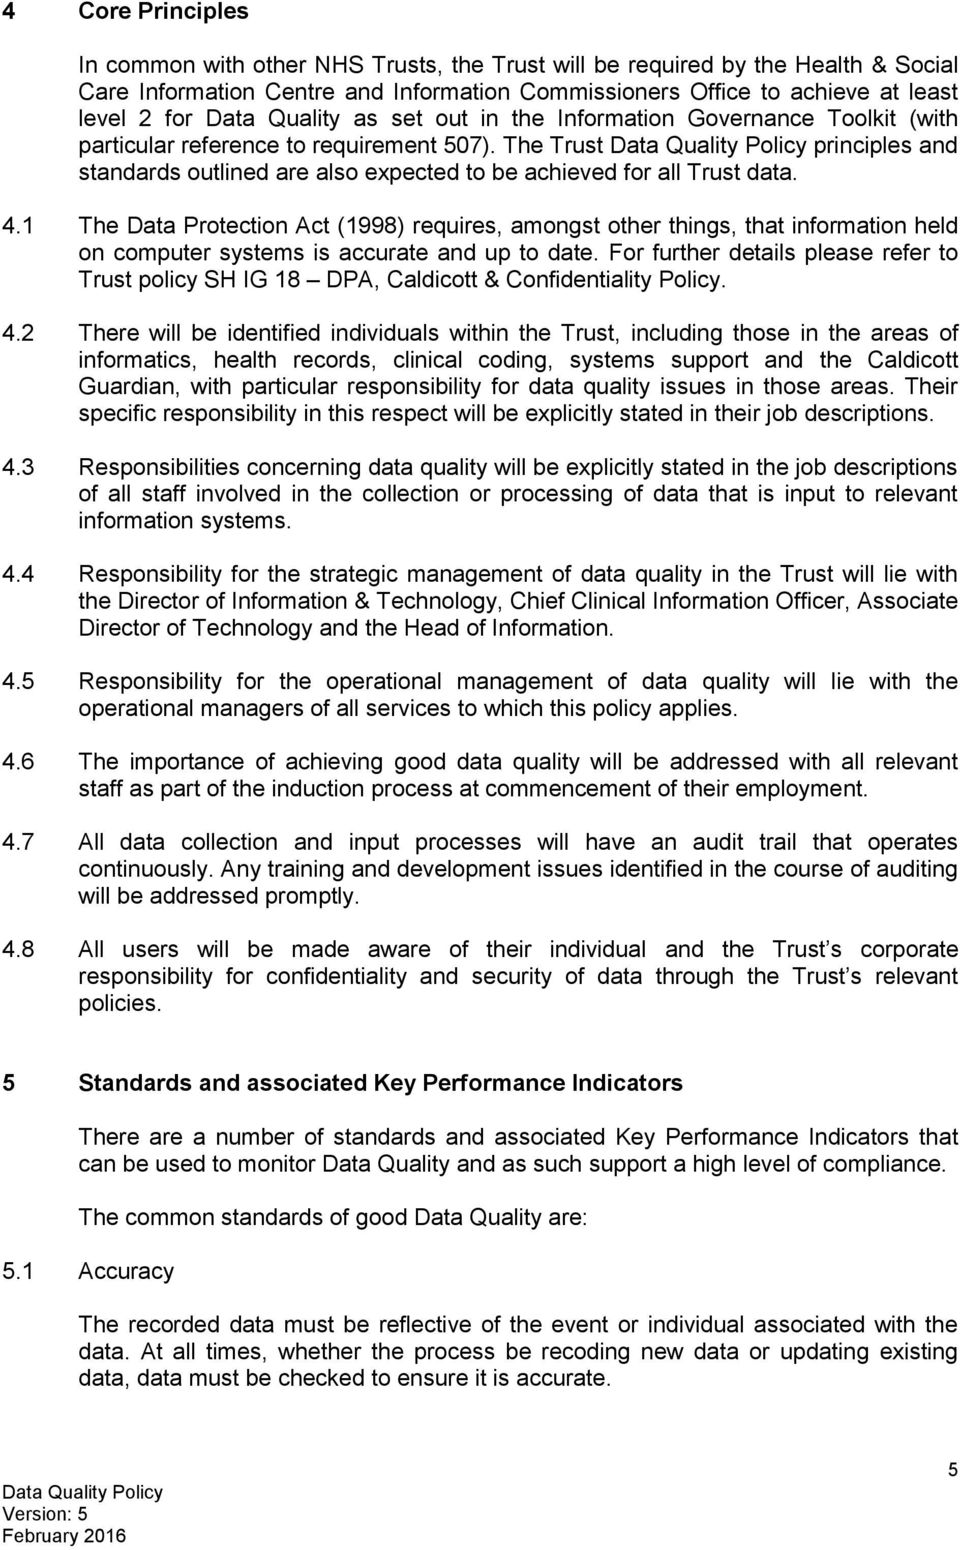 The Trust principles and standards outlined are also expected to be achieved for all Trust data. 4.